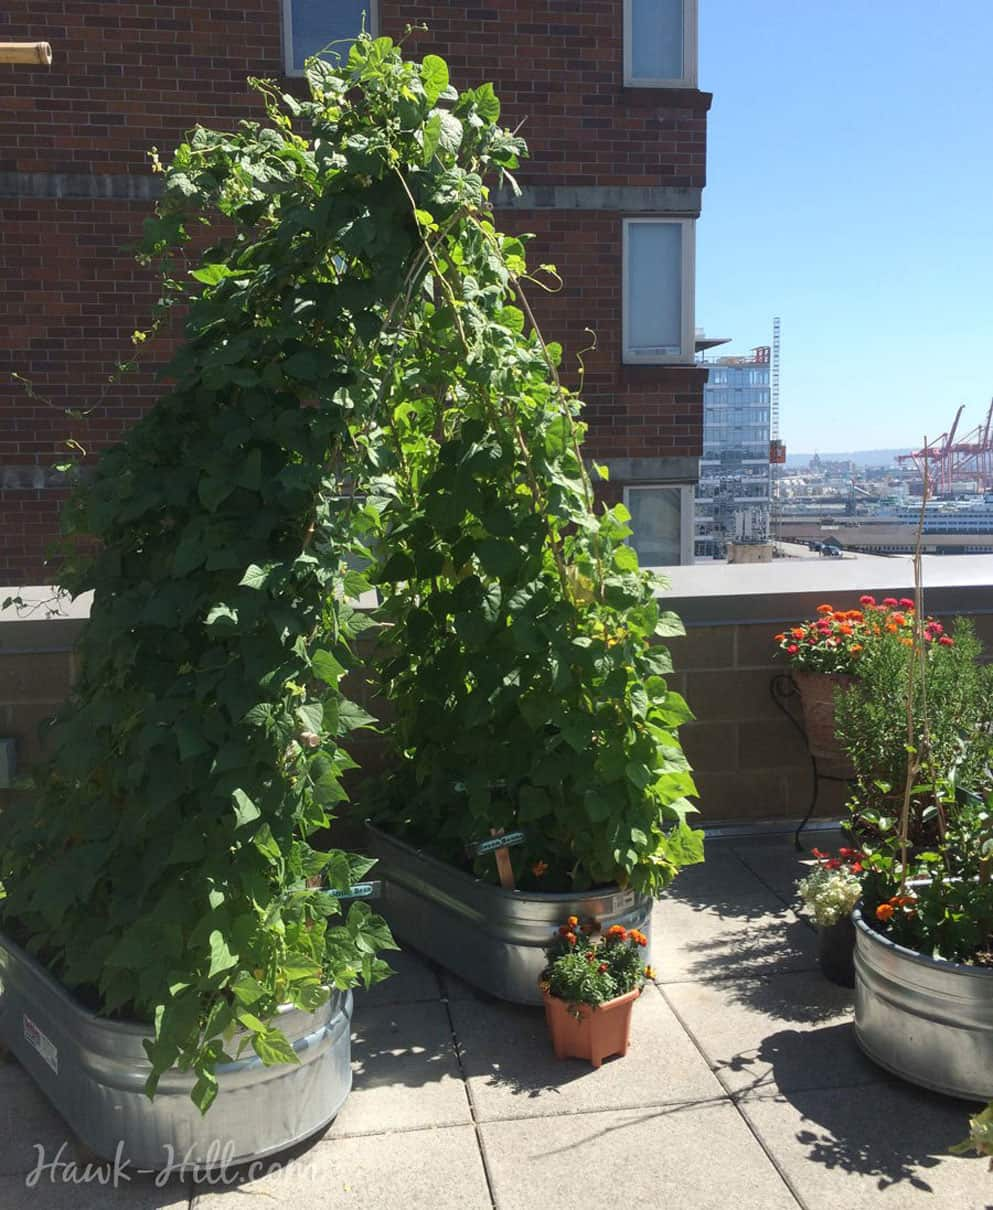 Green bean plants in large containers growing up and over a trellis to form an arched tunnel.